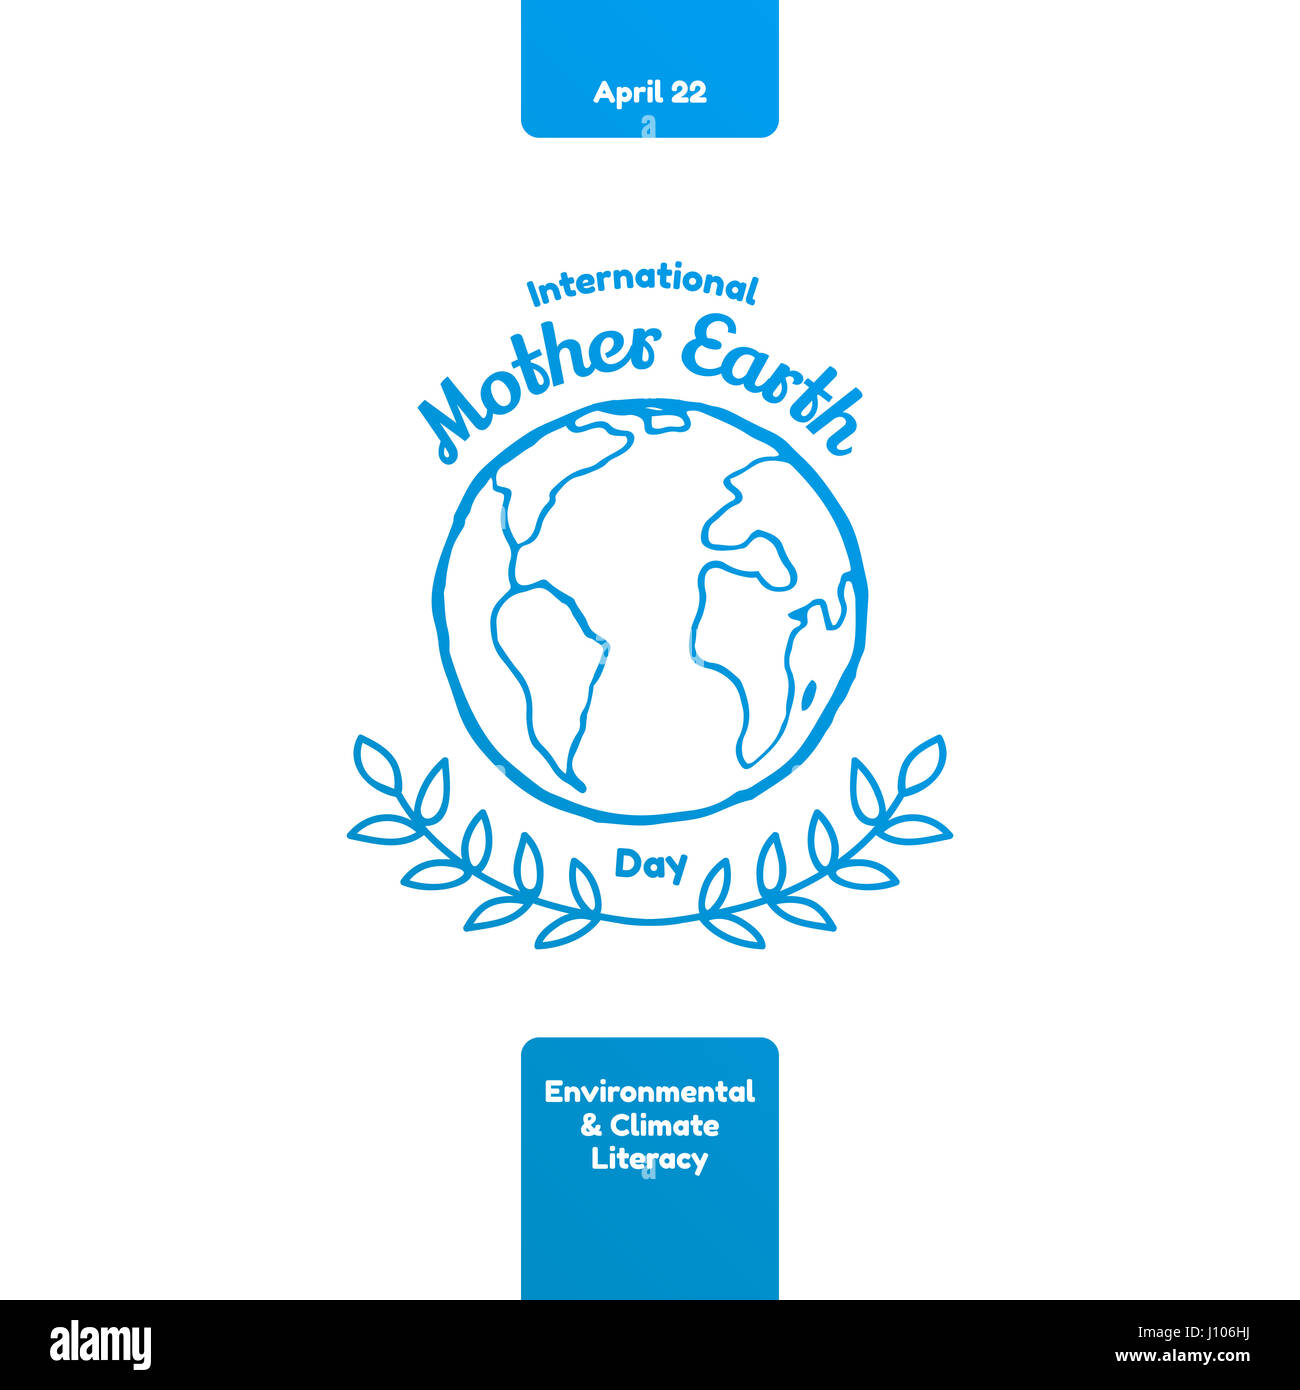 International Mother Earth Day April 22 2017 The Event Theme Is